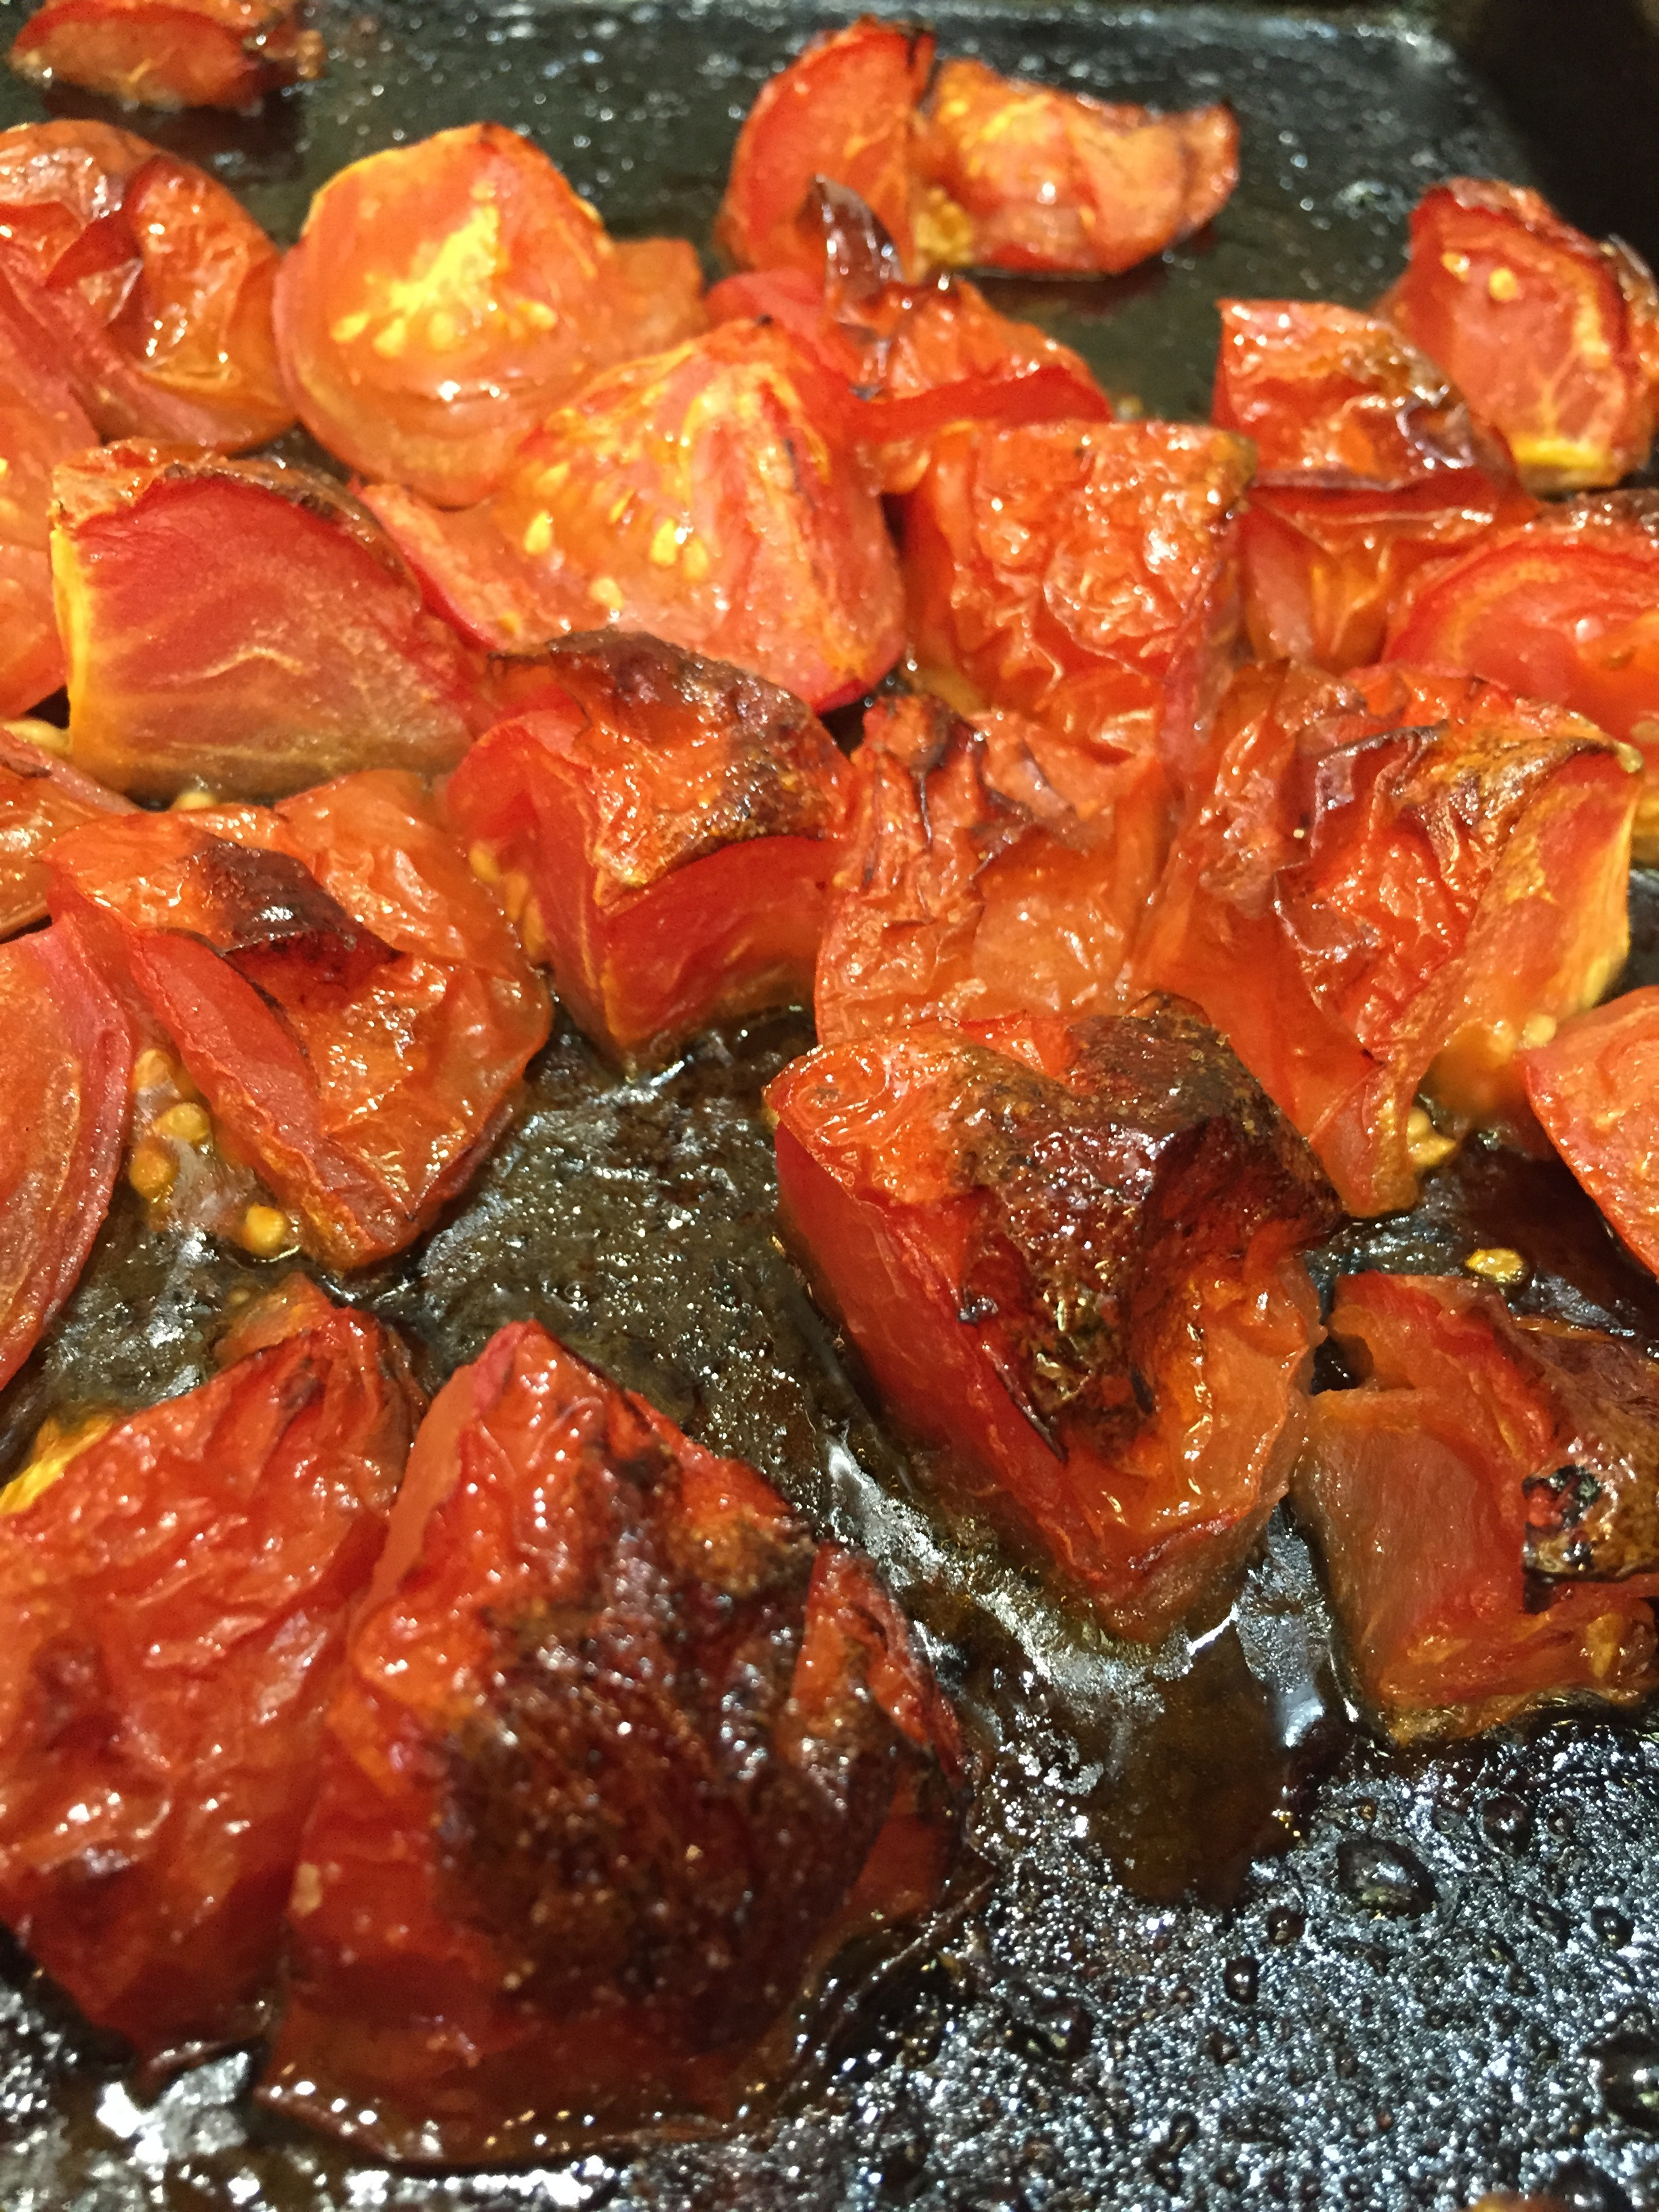 Roasted Tomatoes: Really brings out sweetness and deeper flavor.